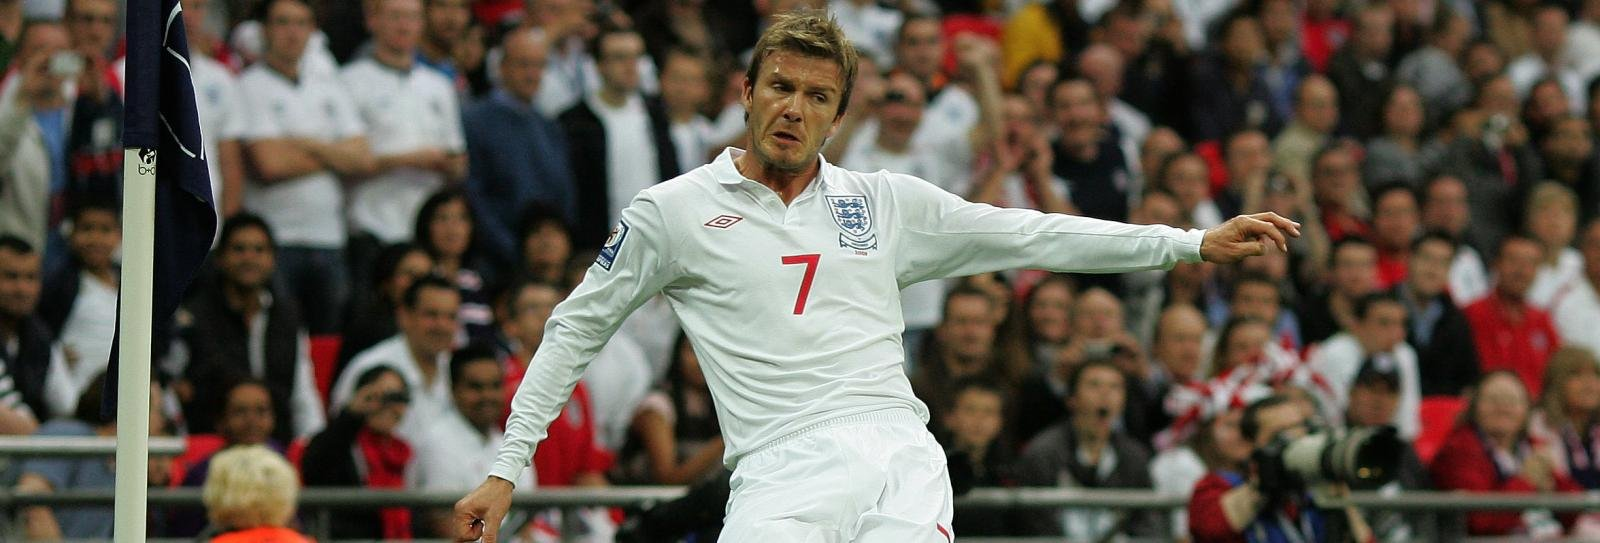 EURO 2016 Q&A: Shura says England can reach the semi-finals, but wishes David Beckham was still playing!